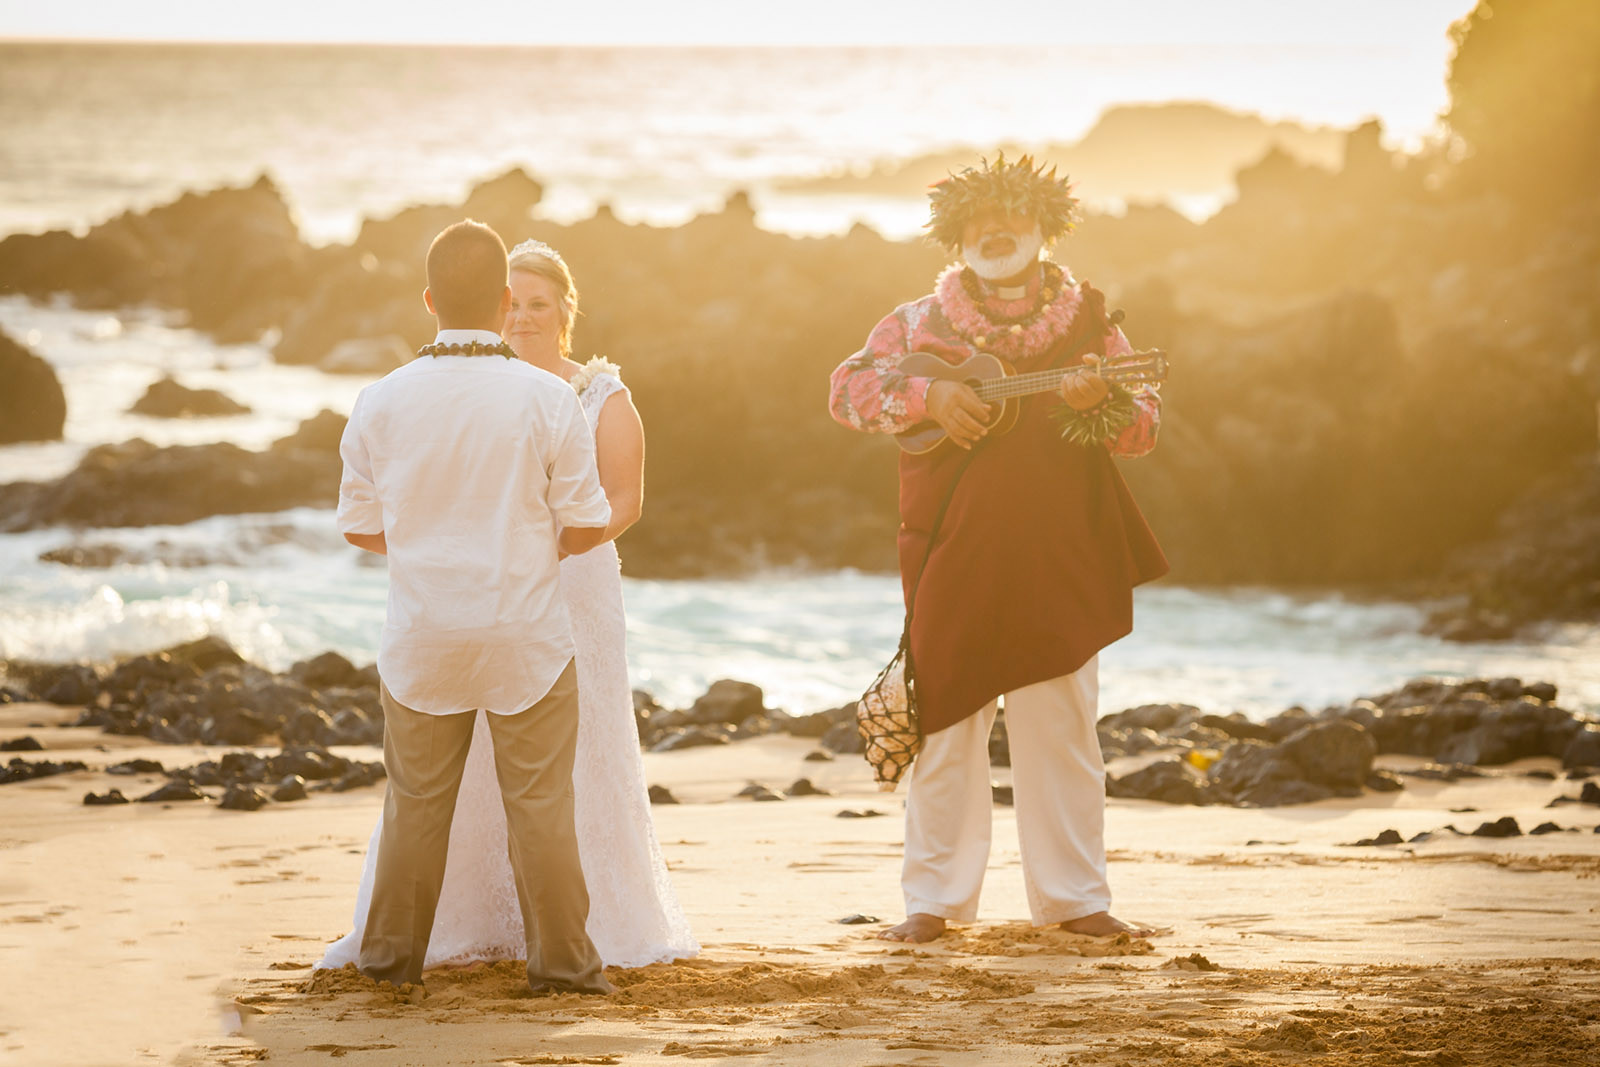 maui-beach-wedding-photographer-5505-X3.jpg